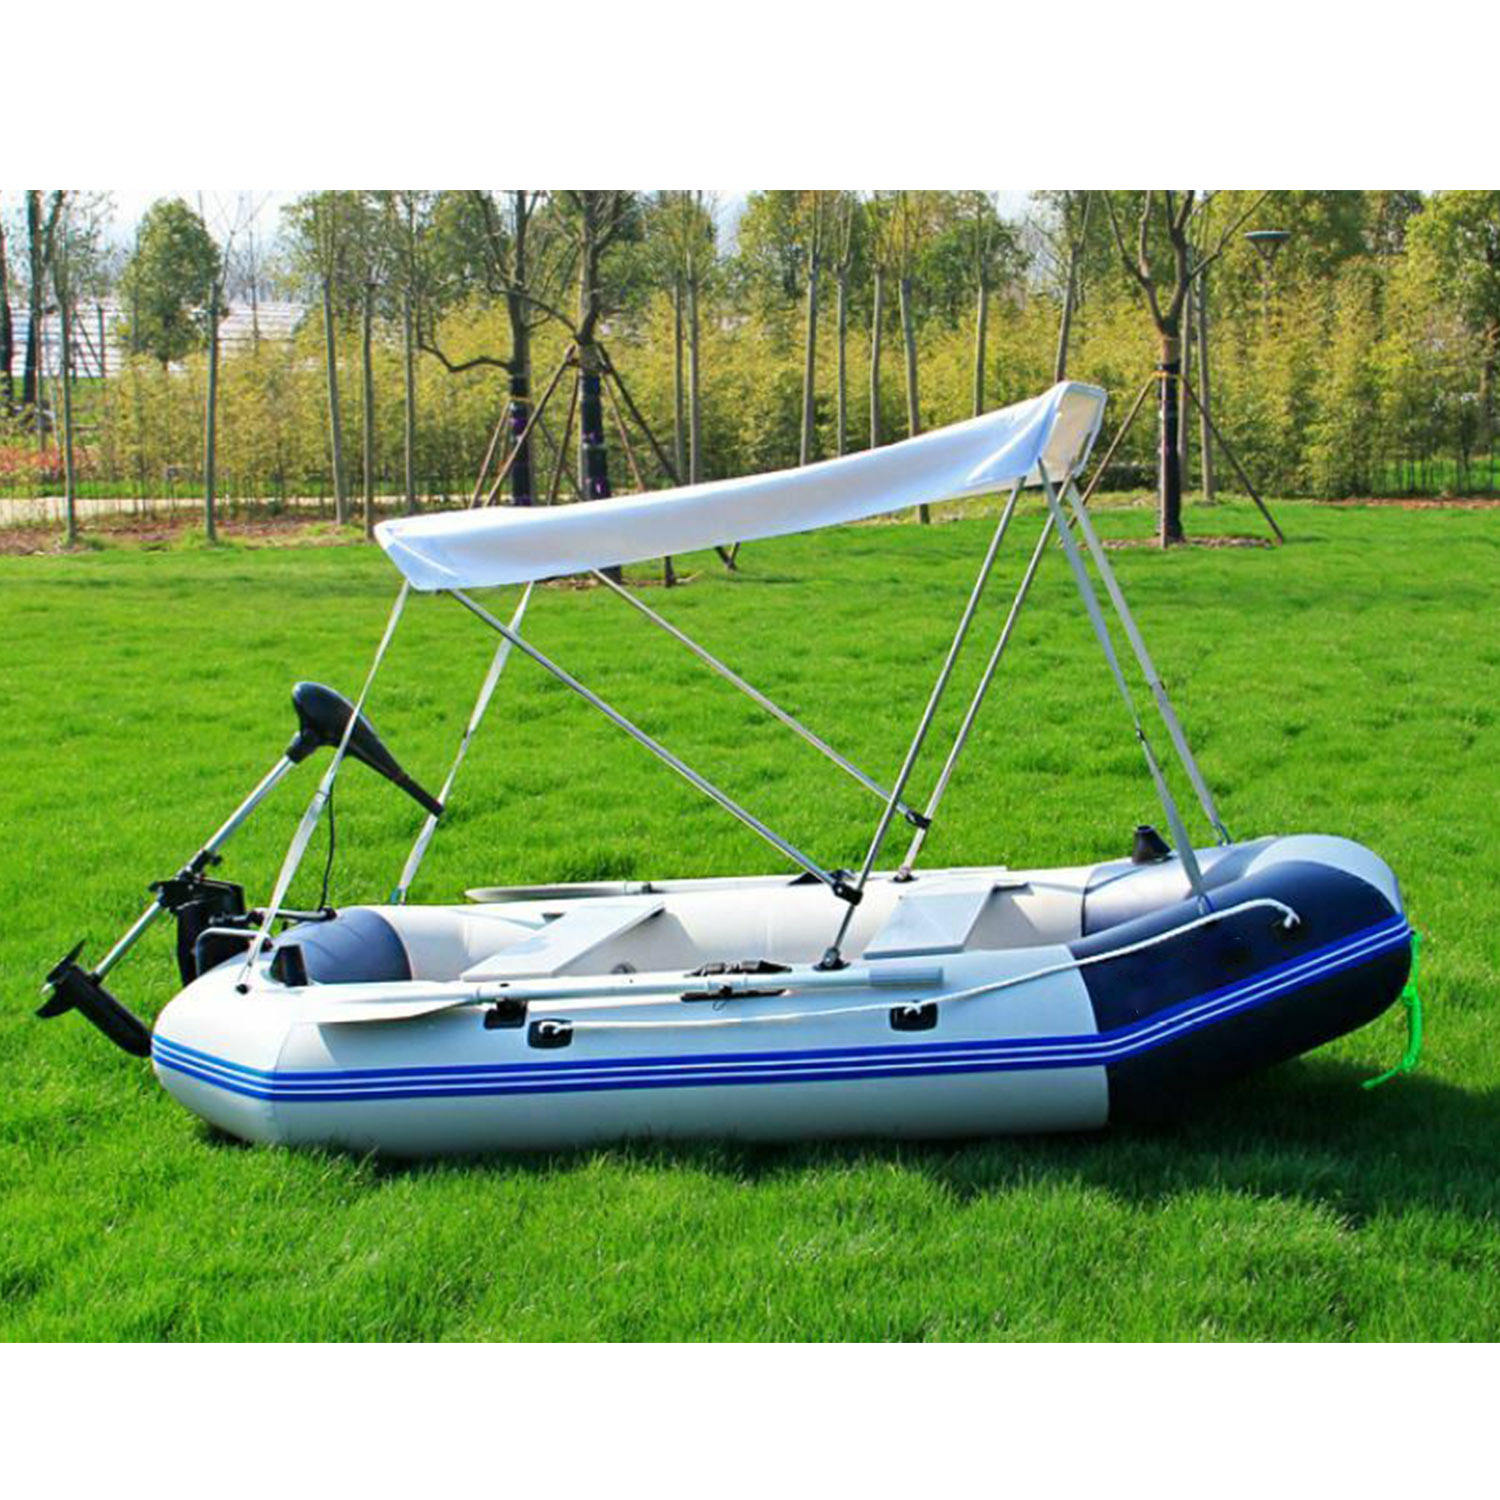 Inflatable 1.2mm PVC Dingy Raft Fishing Boat W/ Canopy & Aluminum Floor NEW